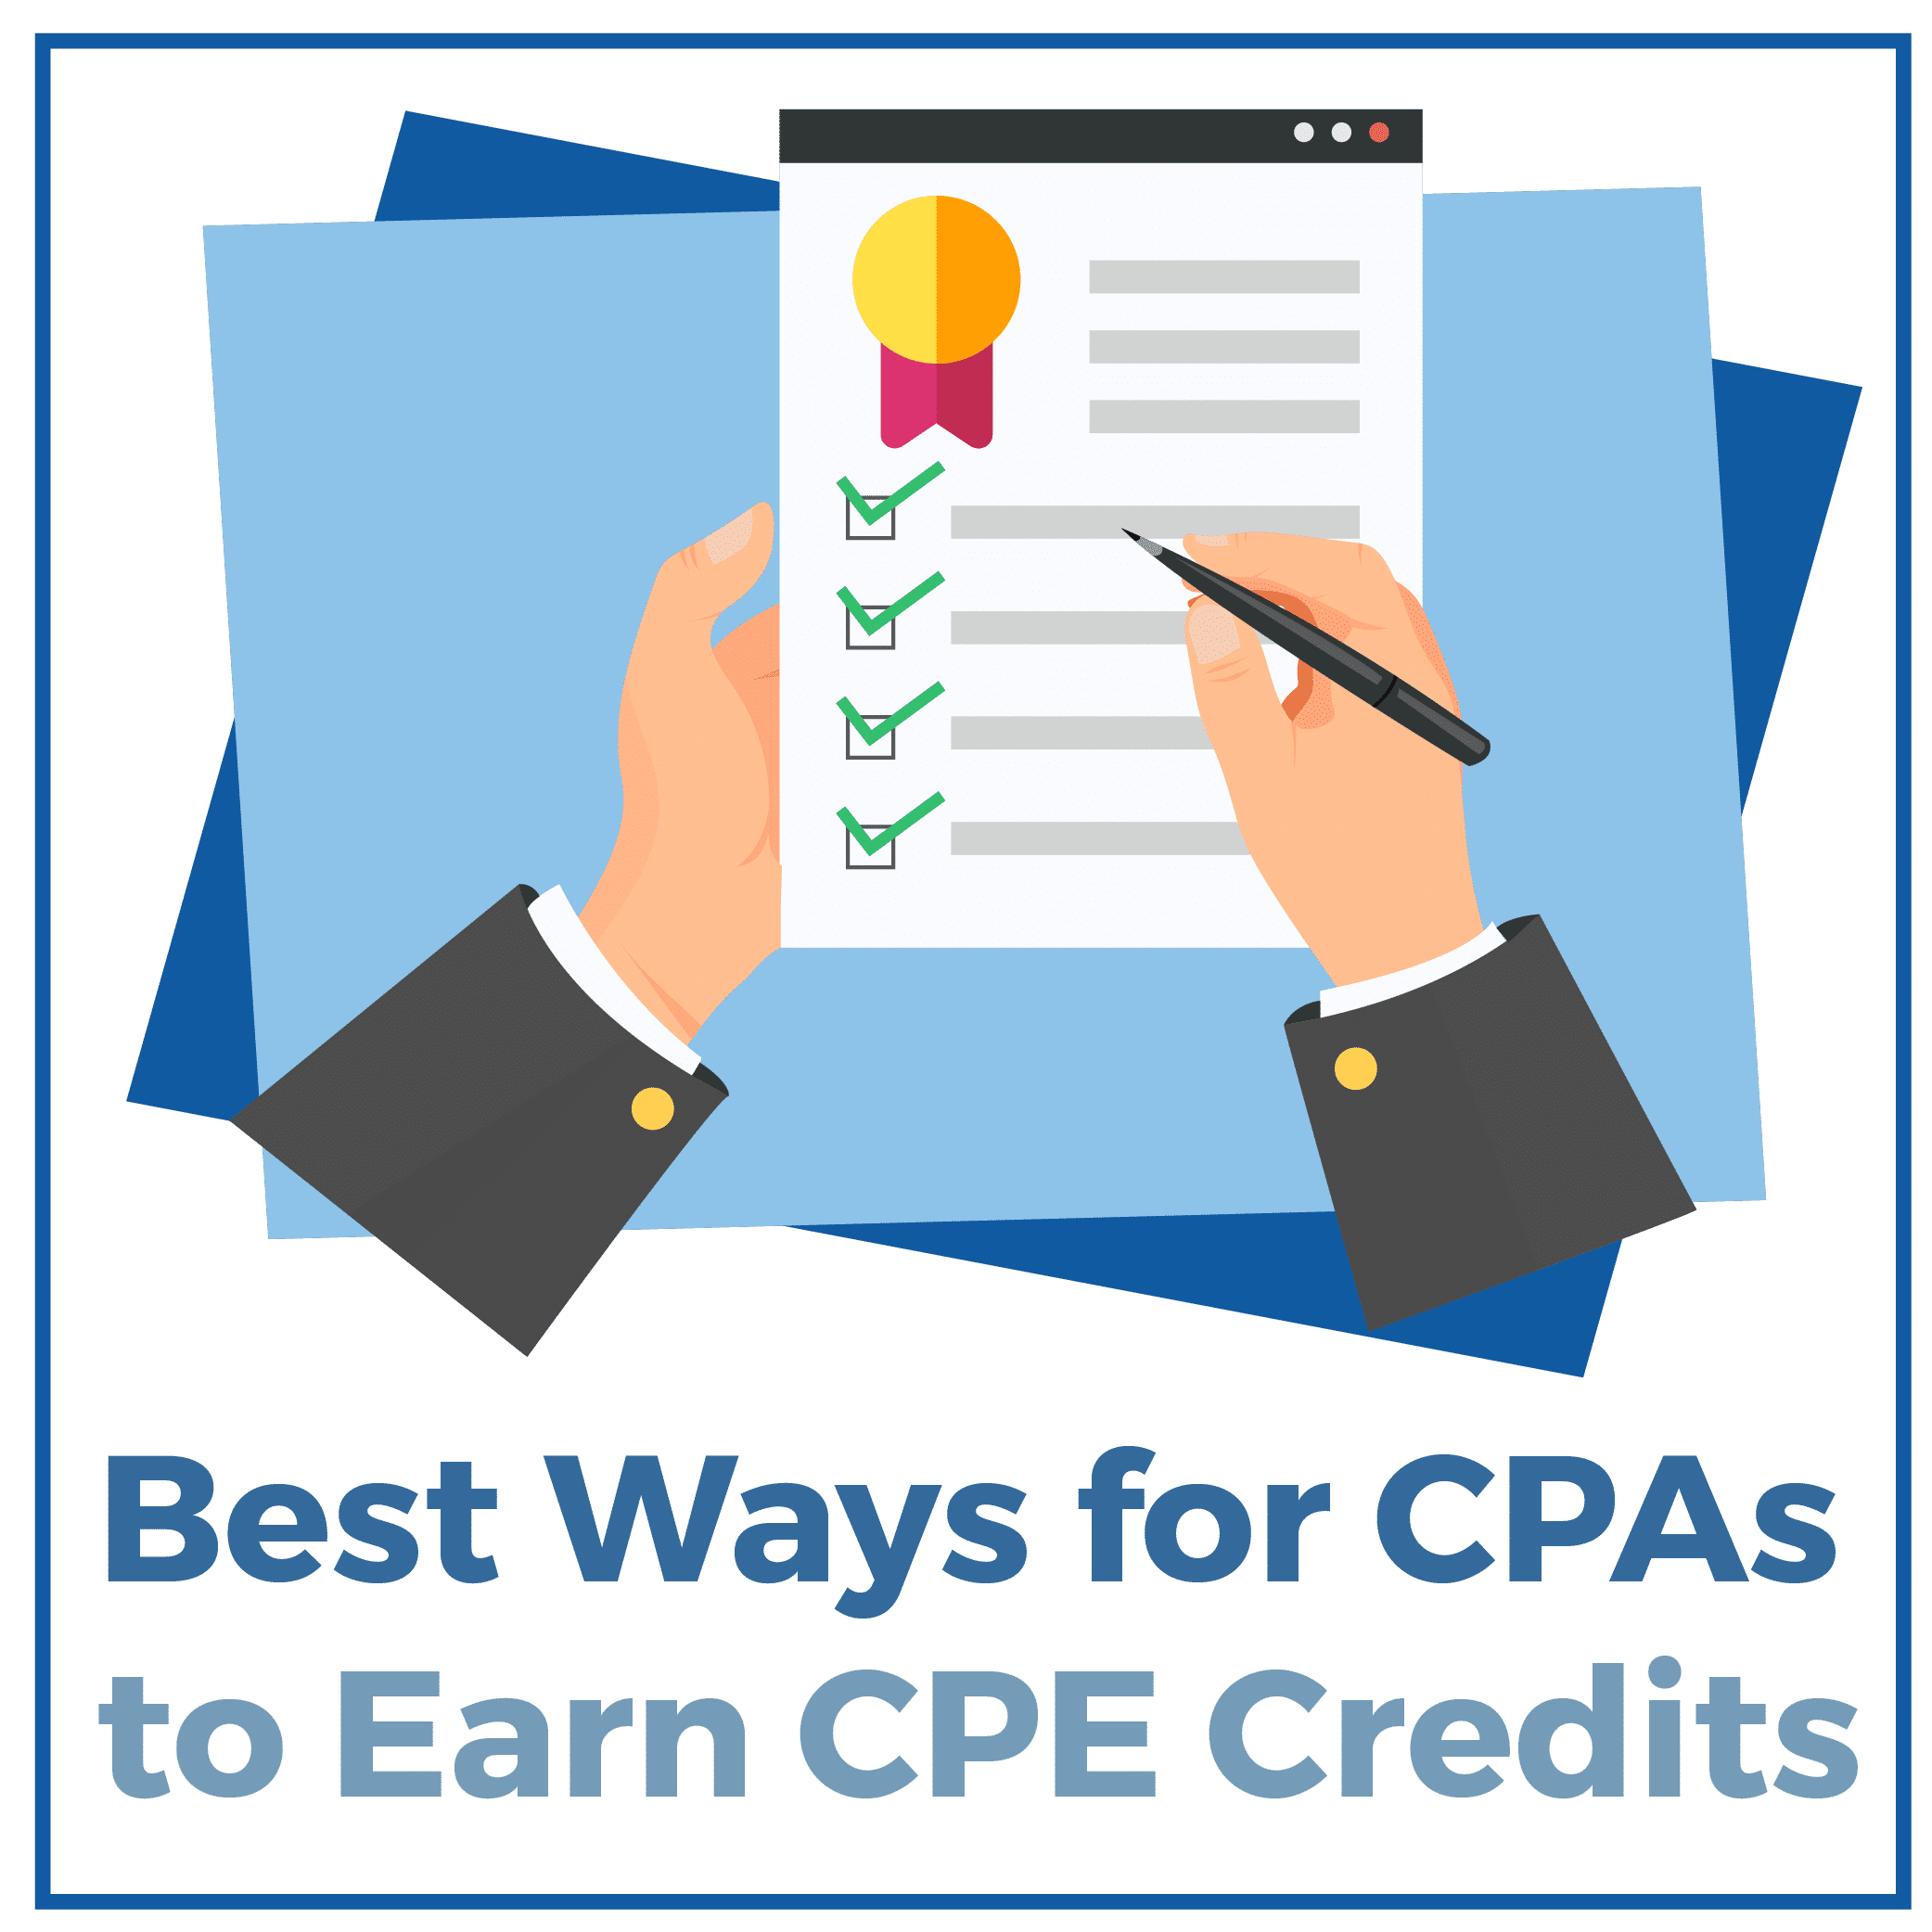 Best Ways for CPAs to Earn CPE Credits